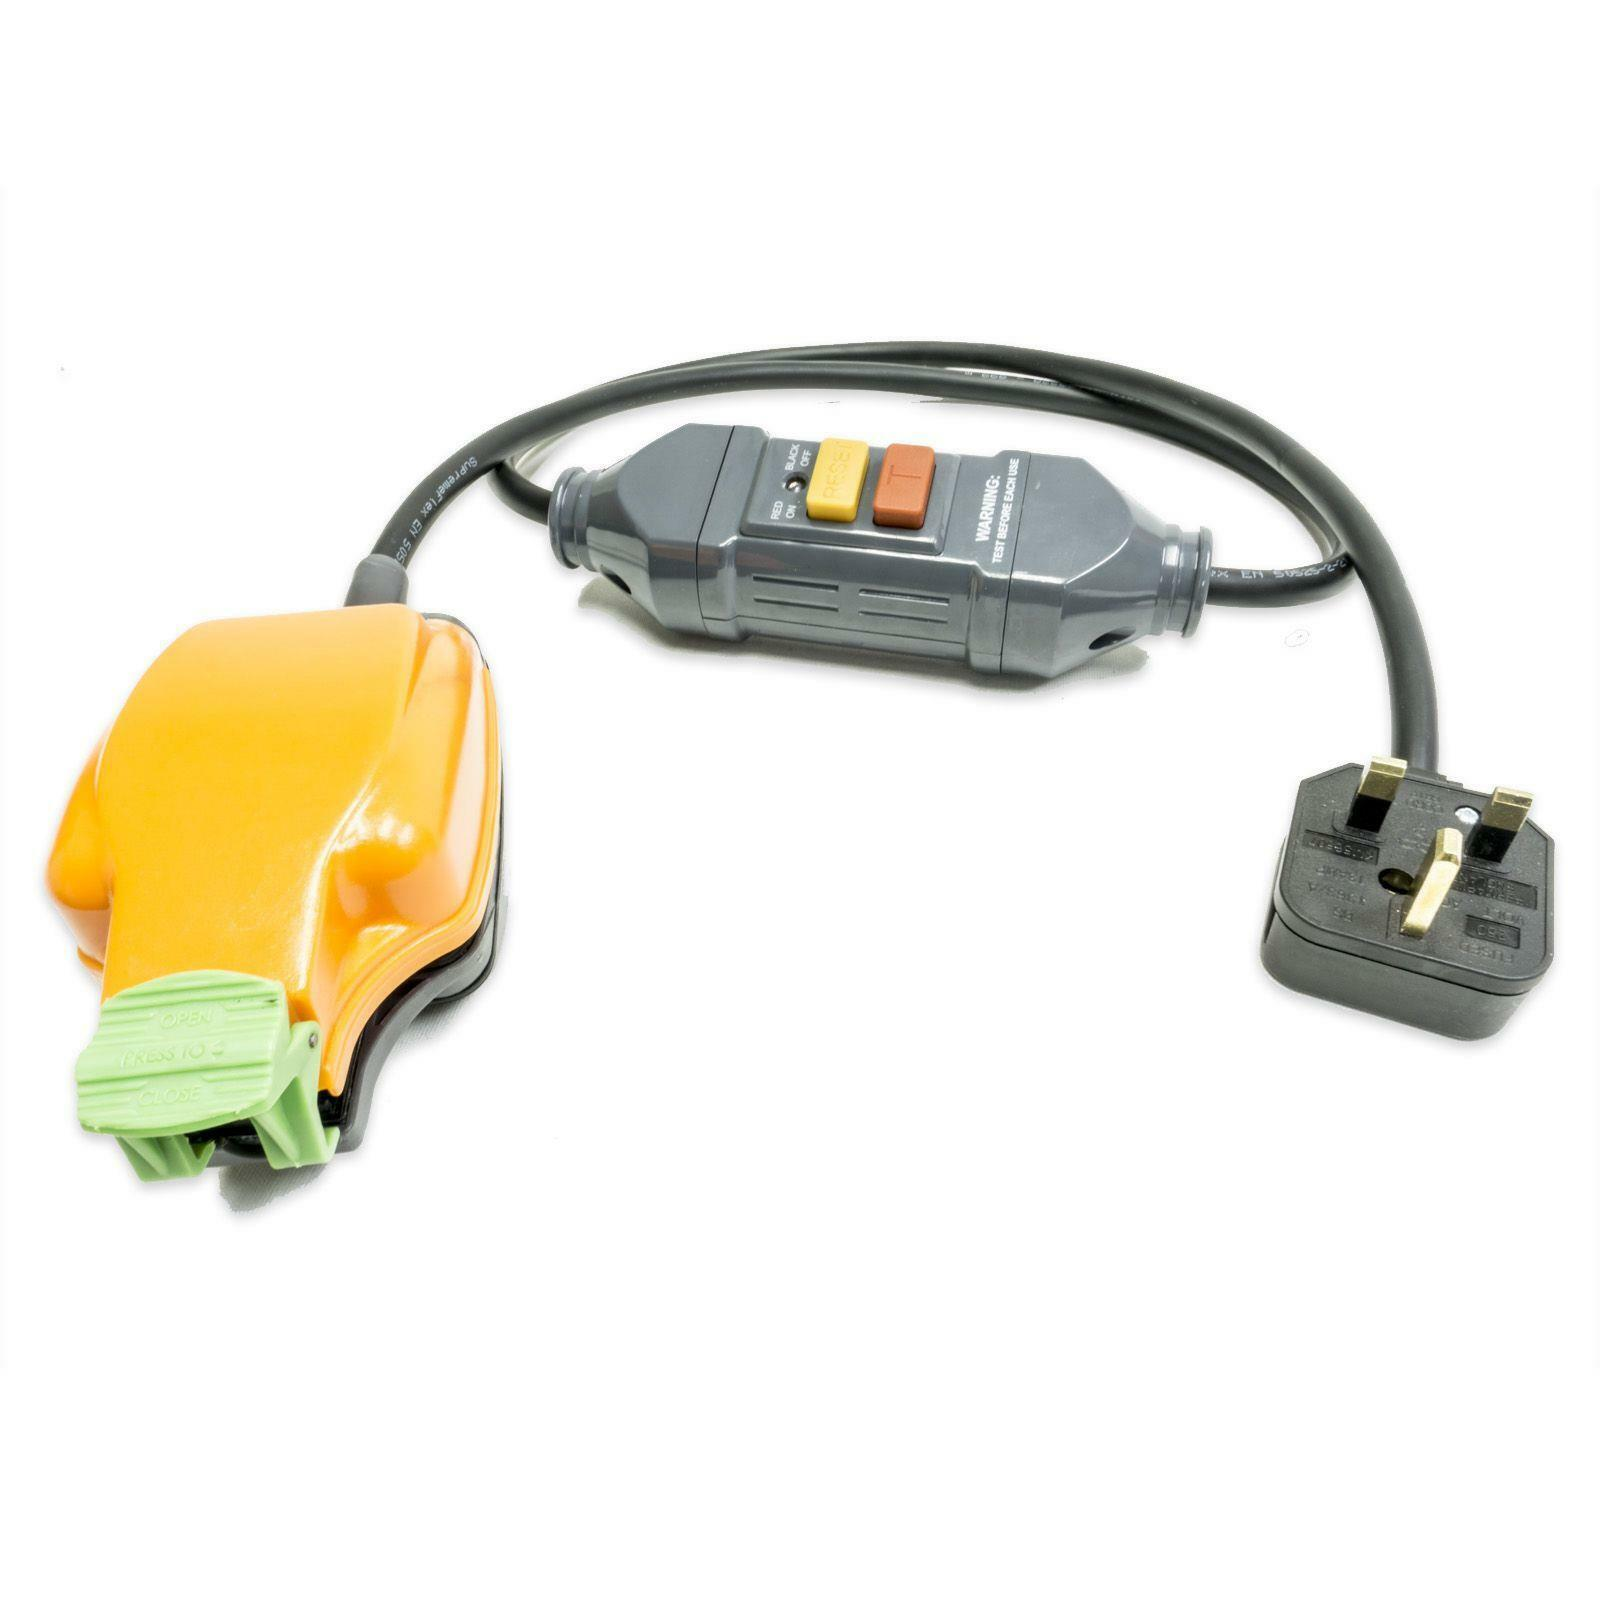 1m RCD Fly Lead 1 gang IP54 Socket. Safety Cable. H07RN-F Tough Rubber